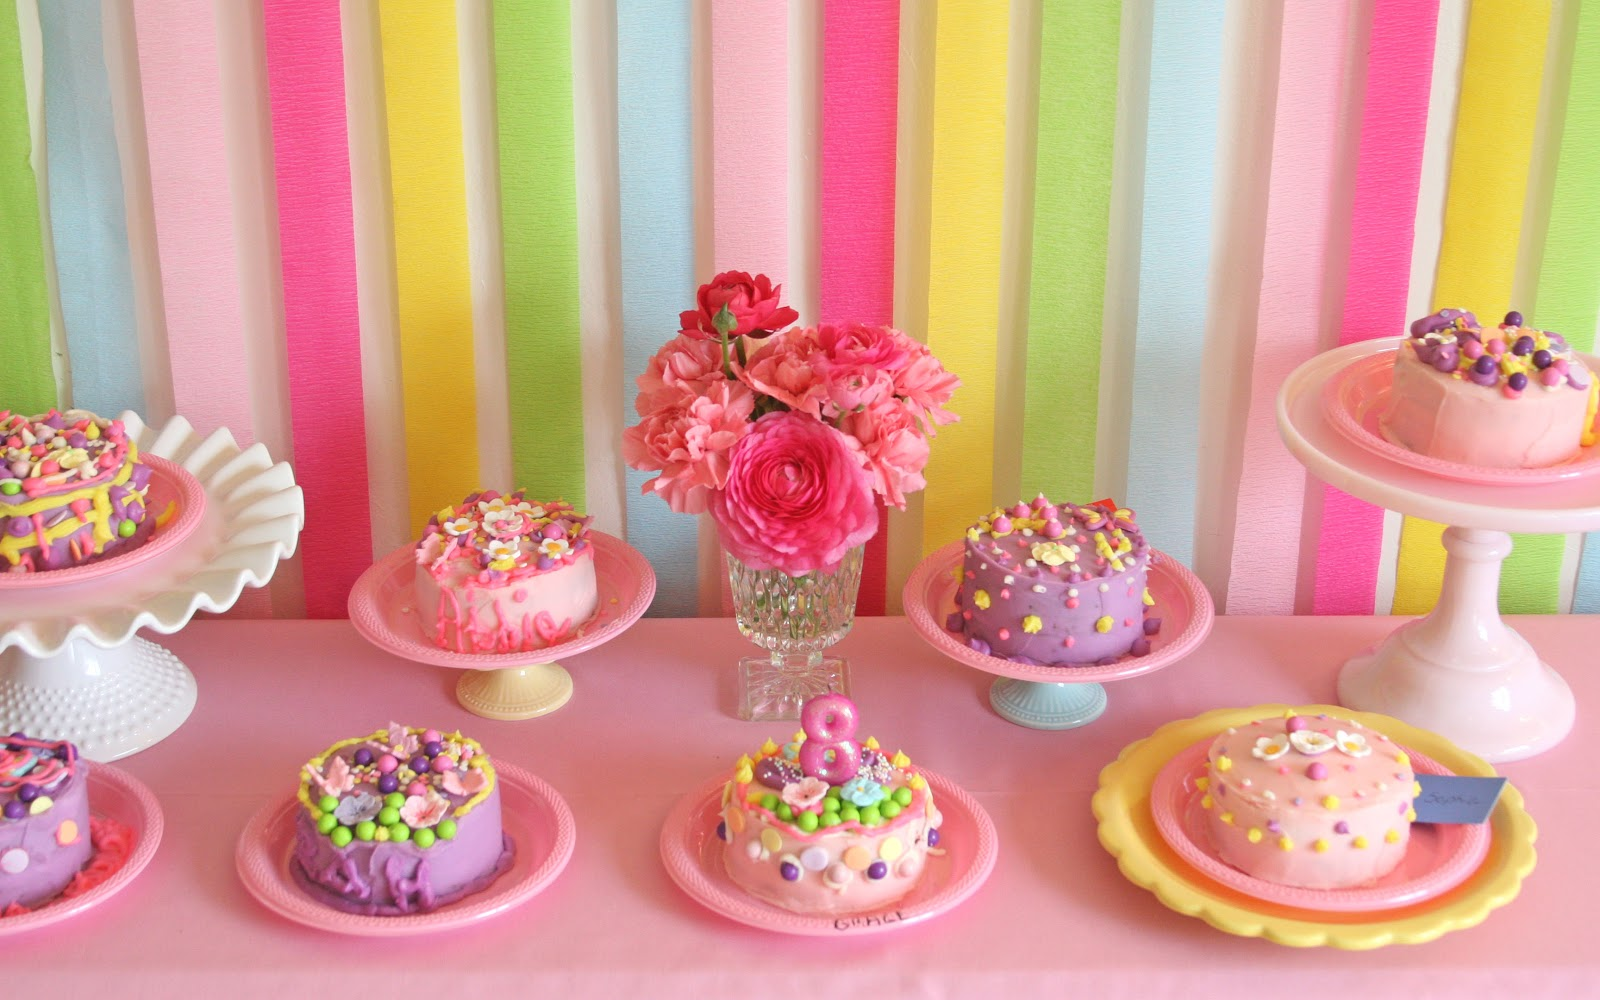 Cake Decorating Party Ideas : Grace s Cake Decorating Party   Glorious Treats